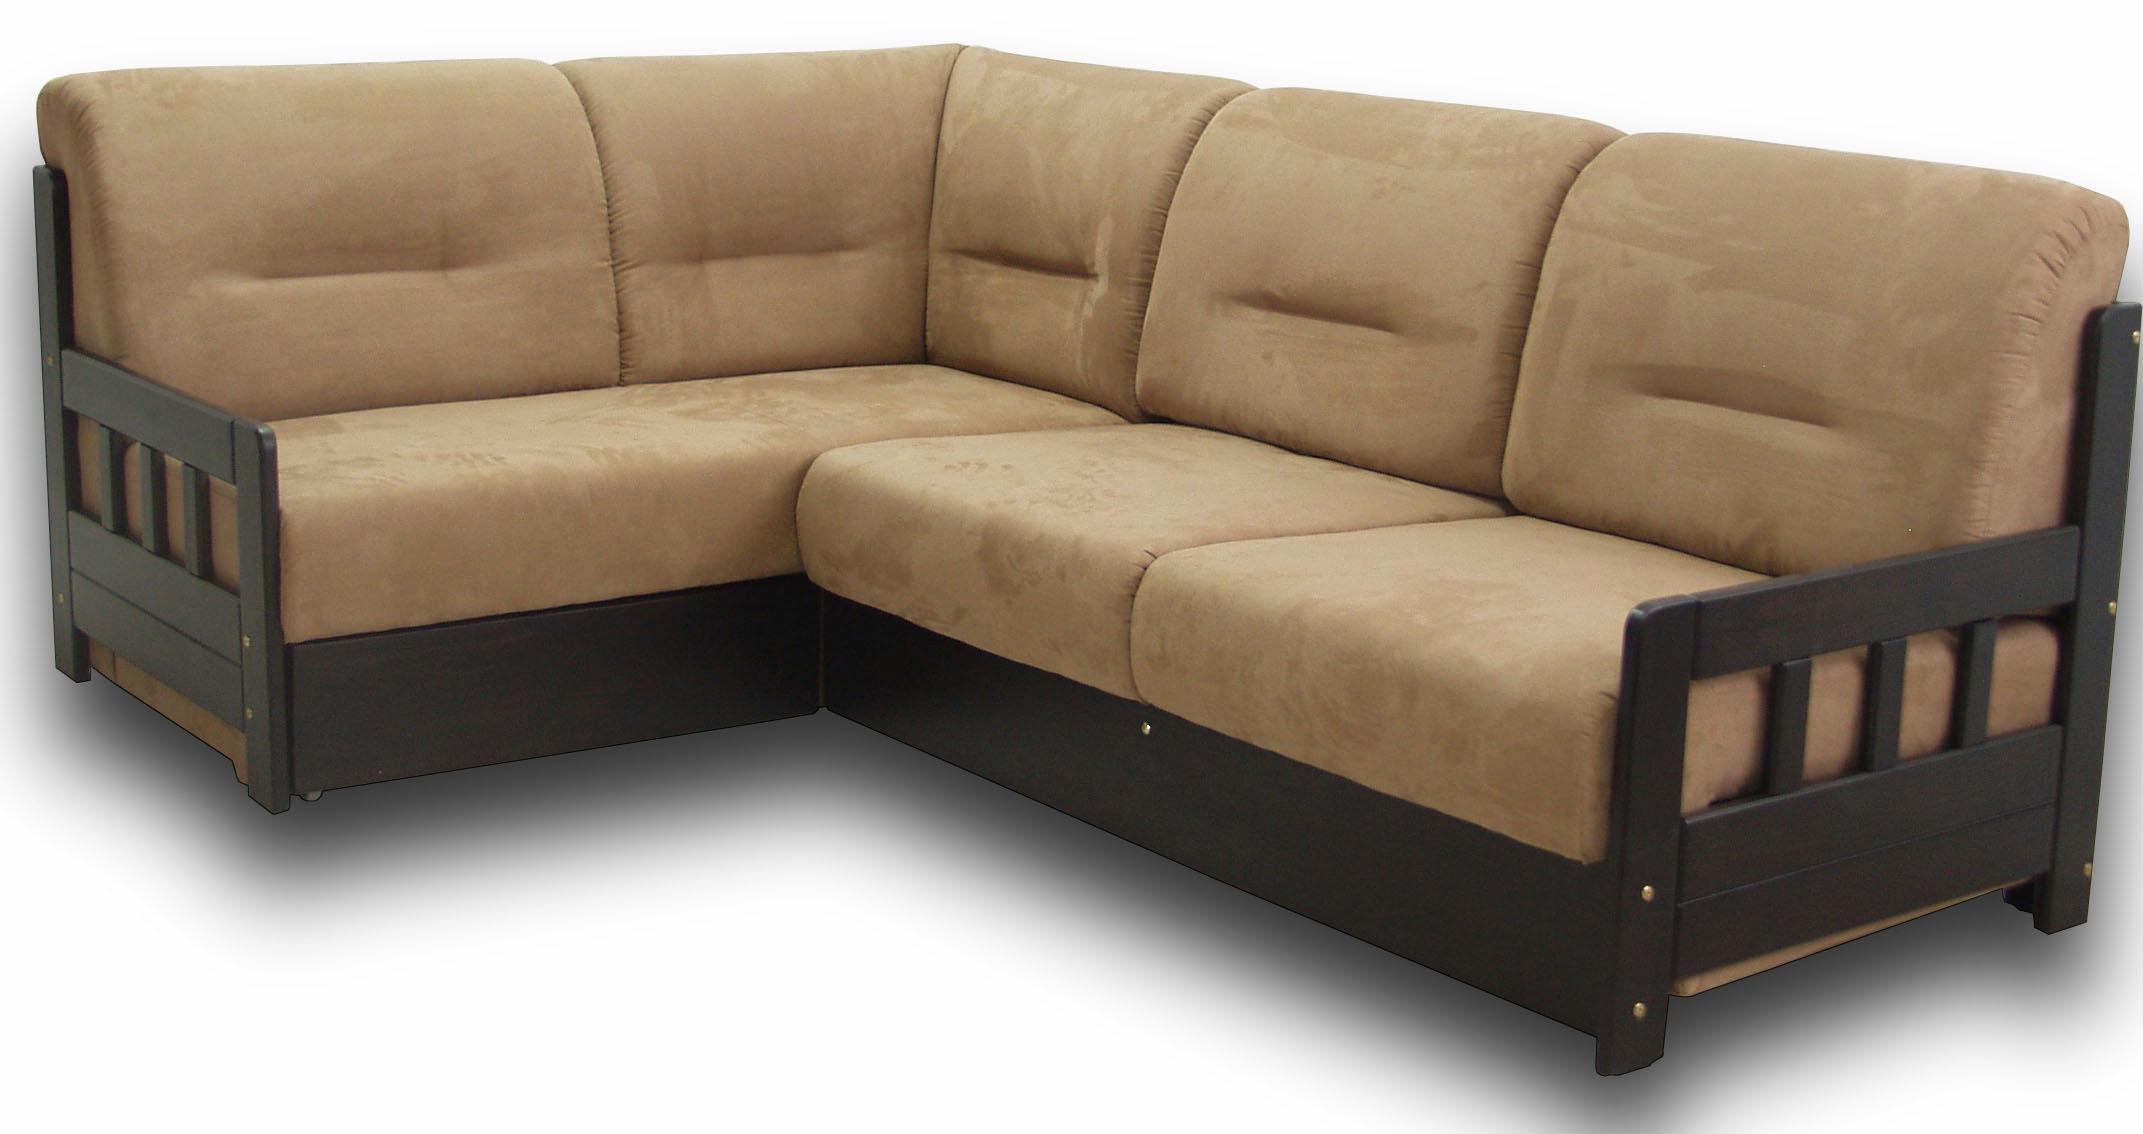 Home affaire Ecksofa Japura